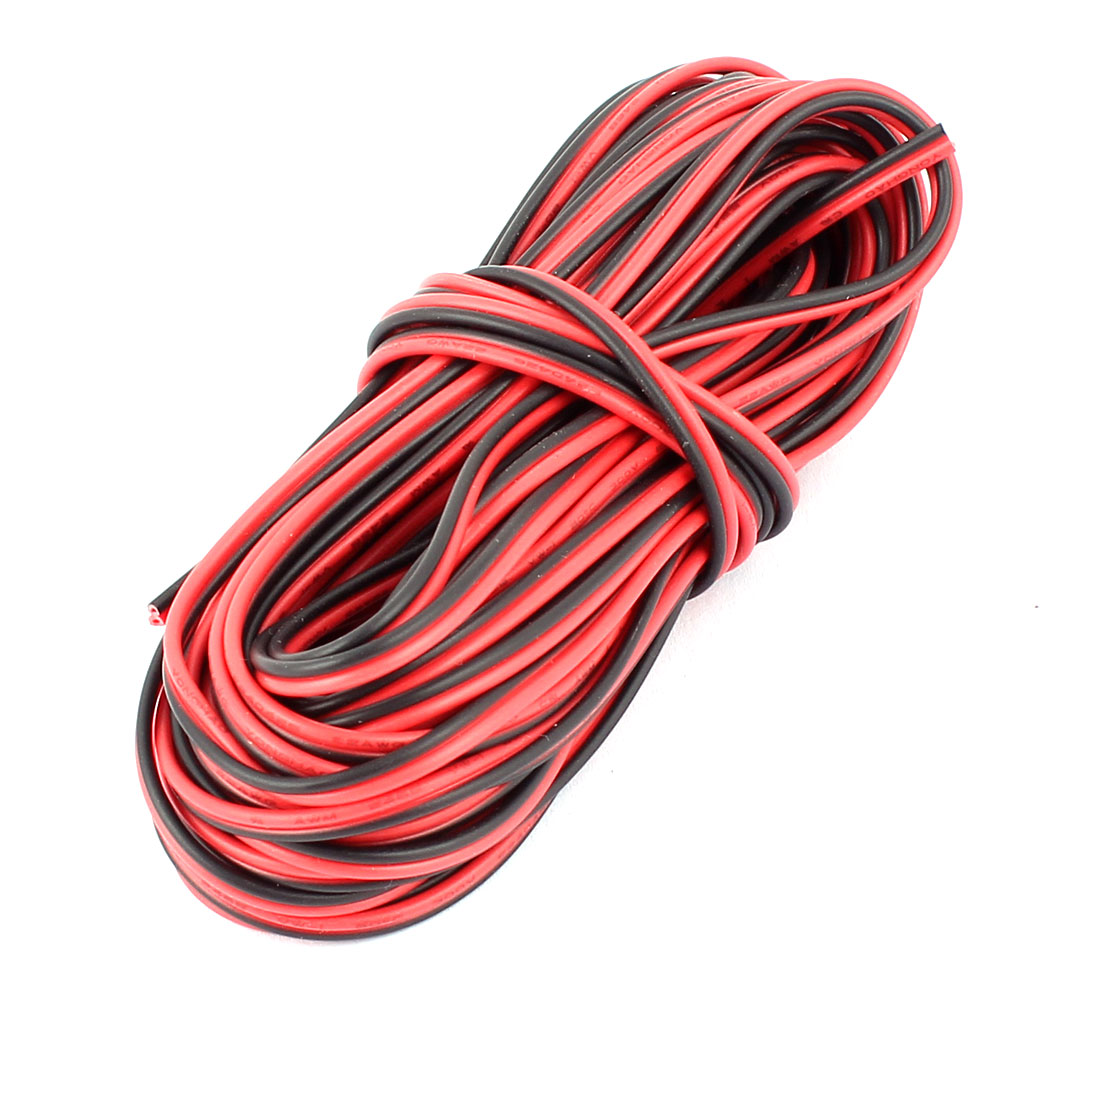 Black Red 22AWG Indoor Outdoor PVC Insulated Electrical Wire Cable 9 Meters Long